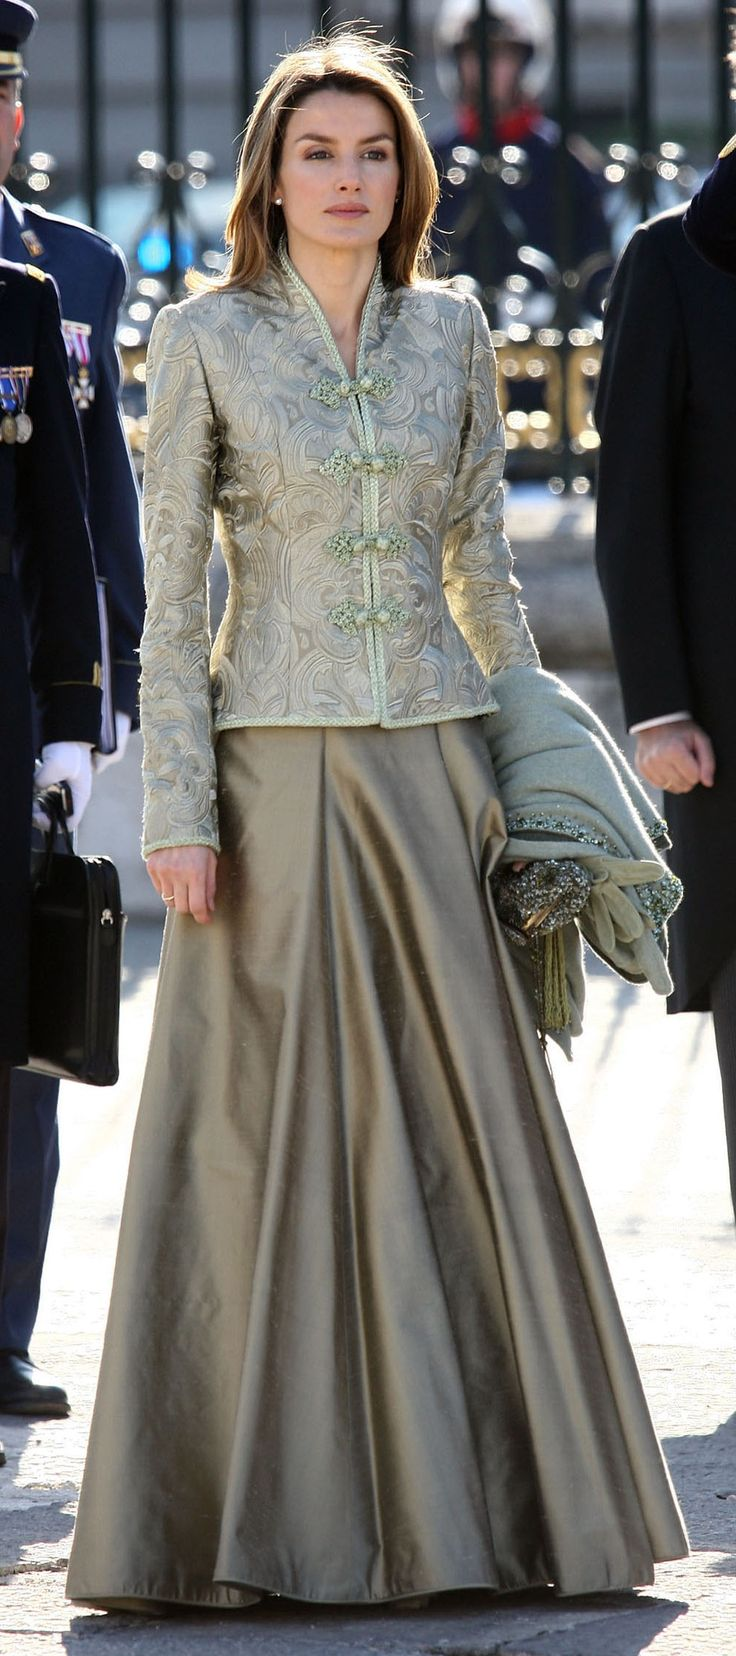 1/6/2008: Princess Letizia attends the Epiphany Day celebrations in Madrid